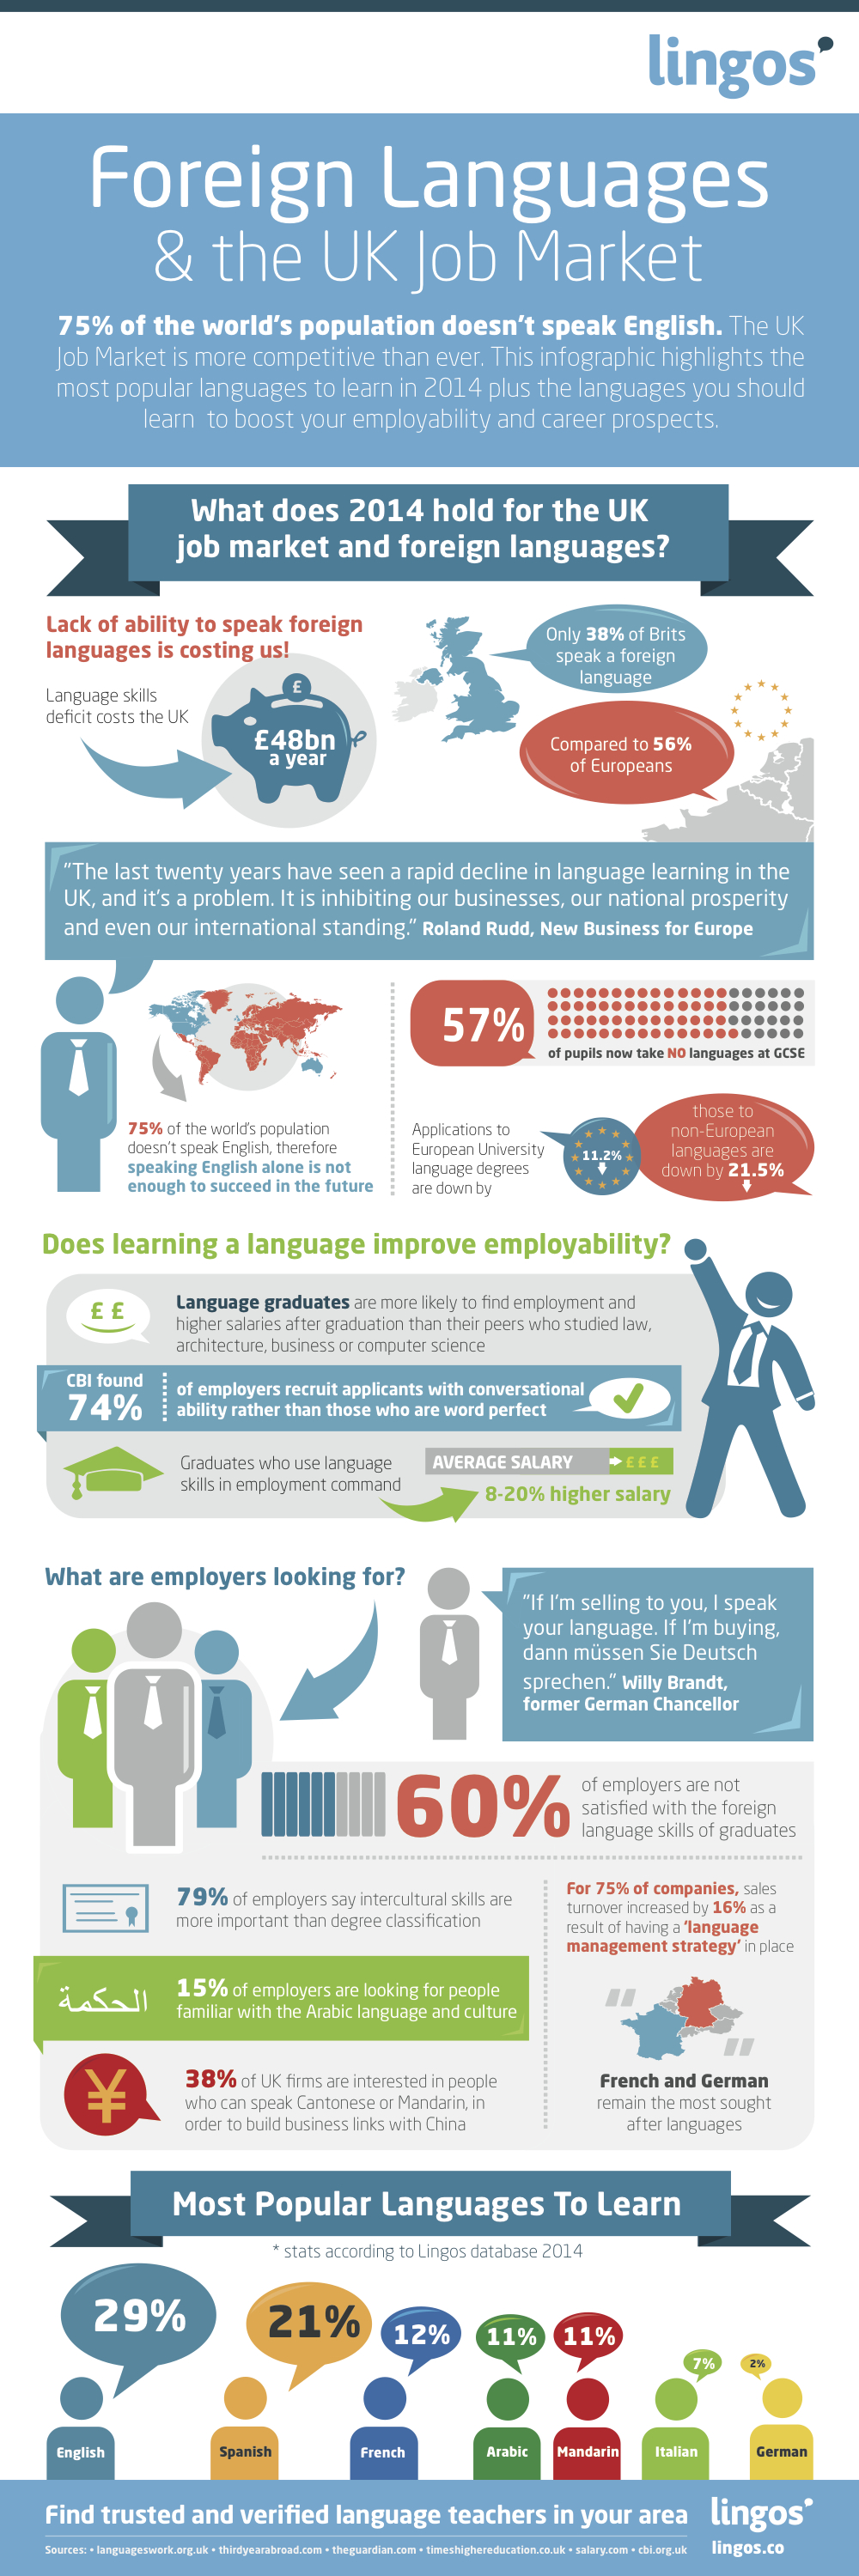 Foreign Languages & the UK Job Market